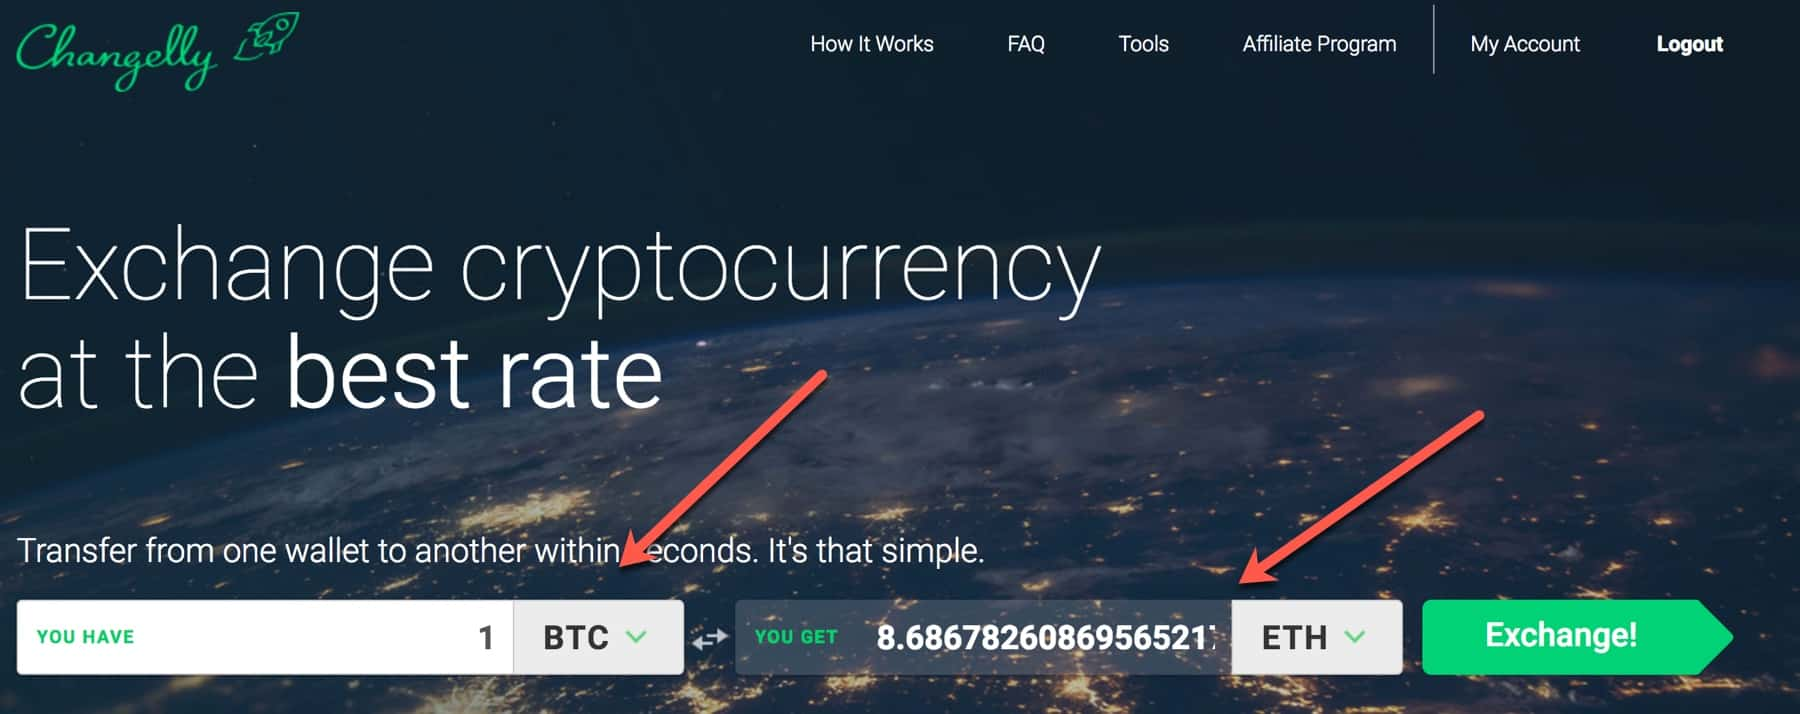 better to convert or exchange cryptocurrencies